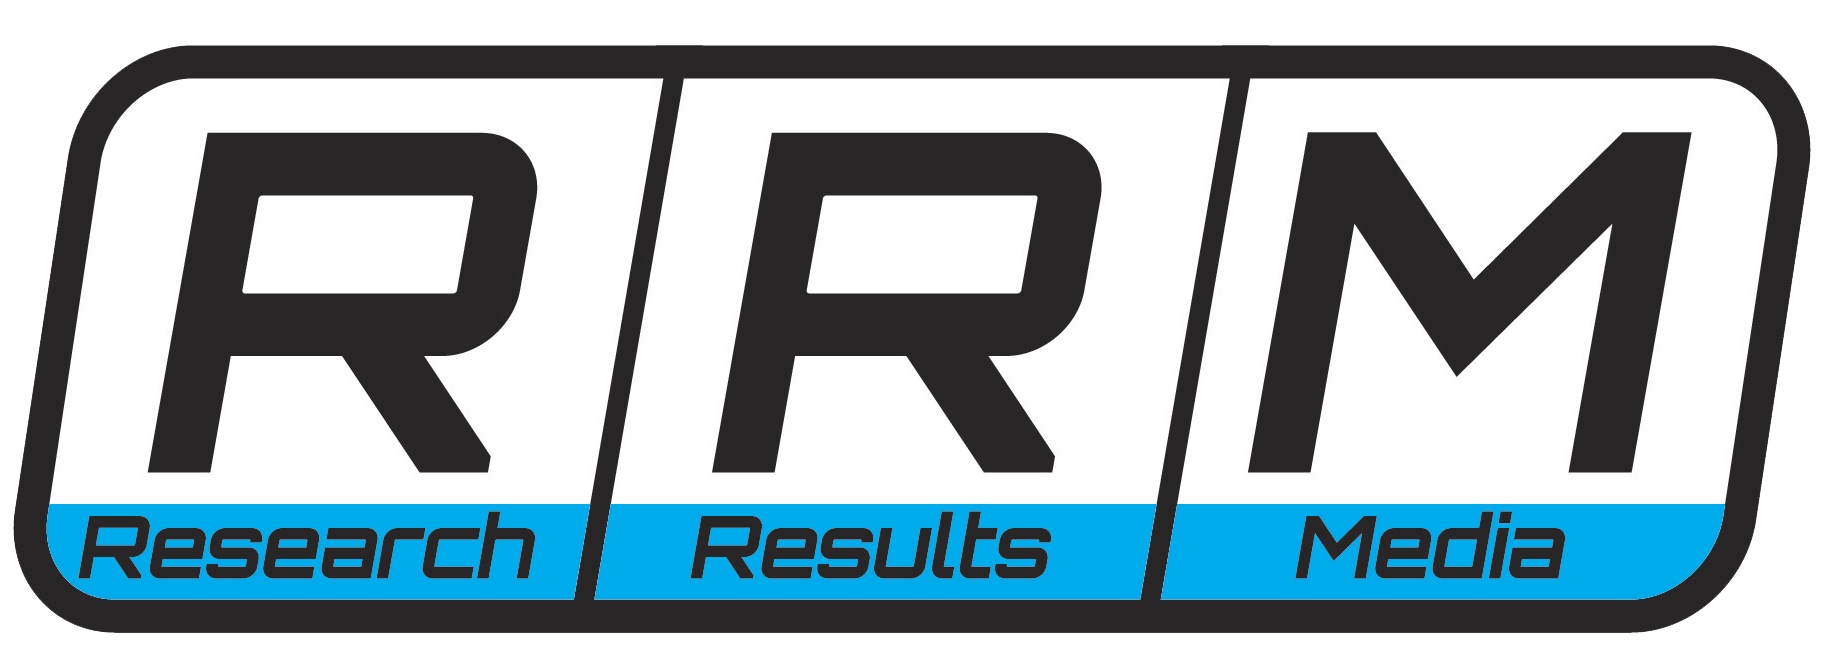 Research Results Media